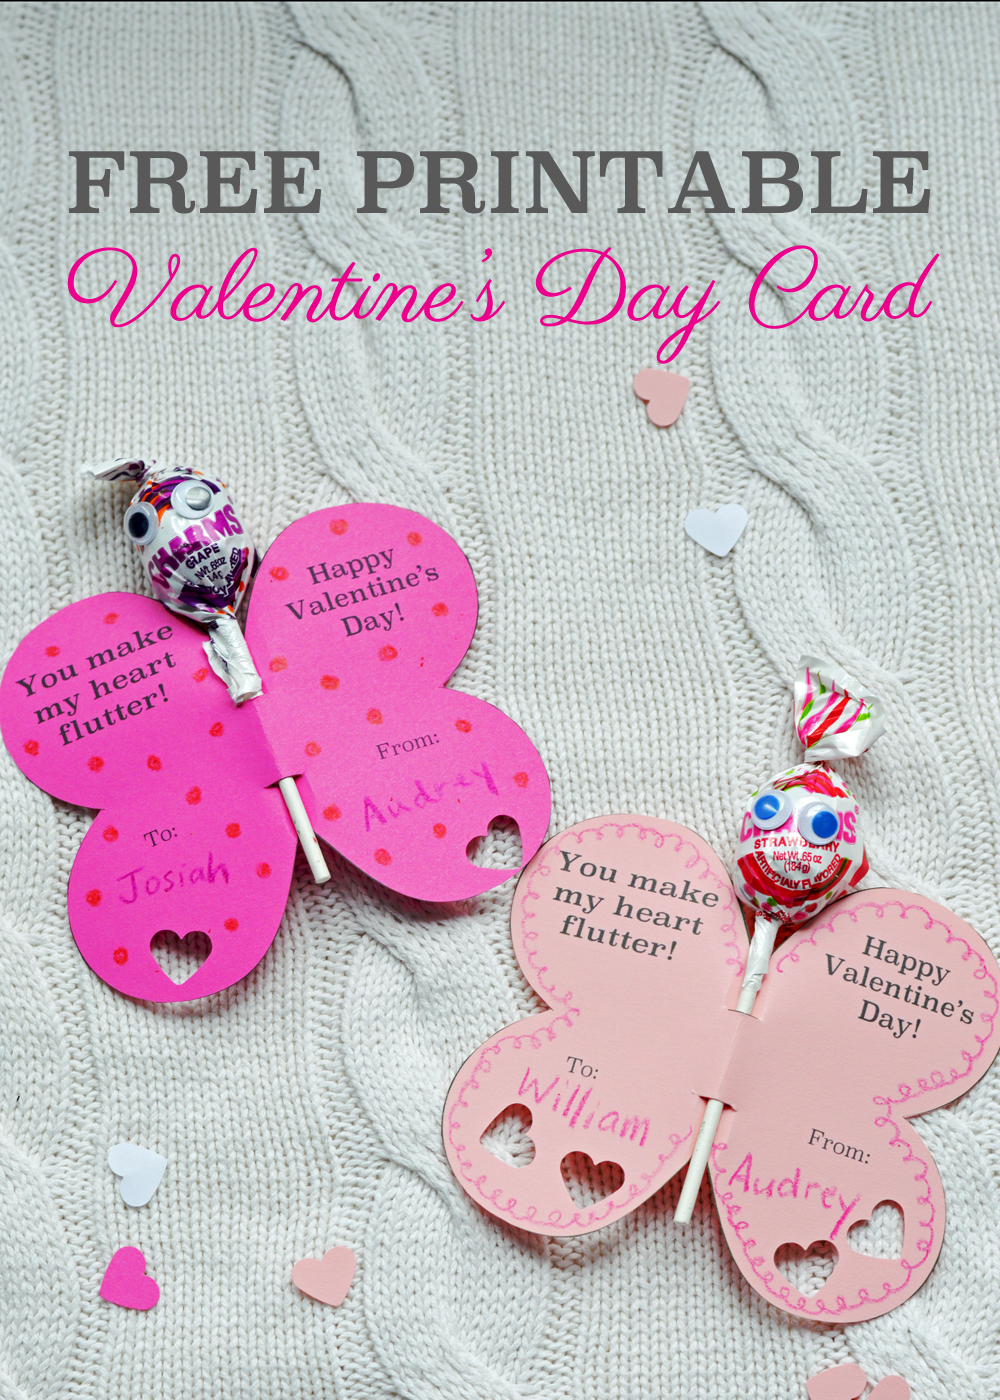 Free Printable Butterfly Valentines Day Card from The Nesting Spot